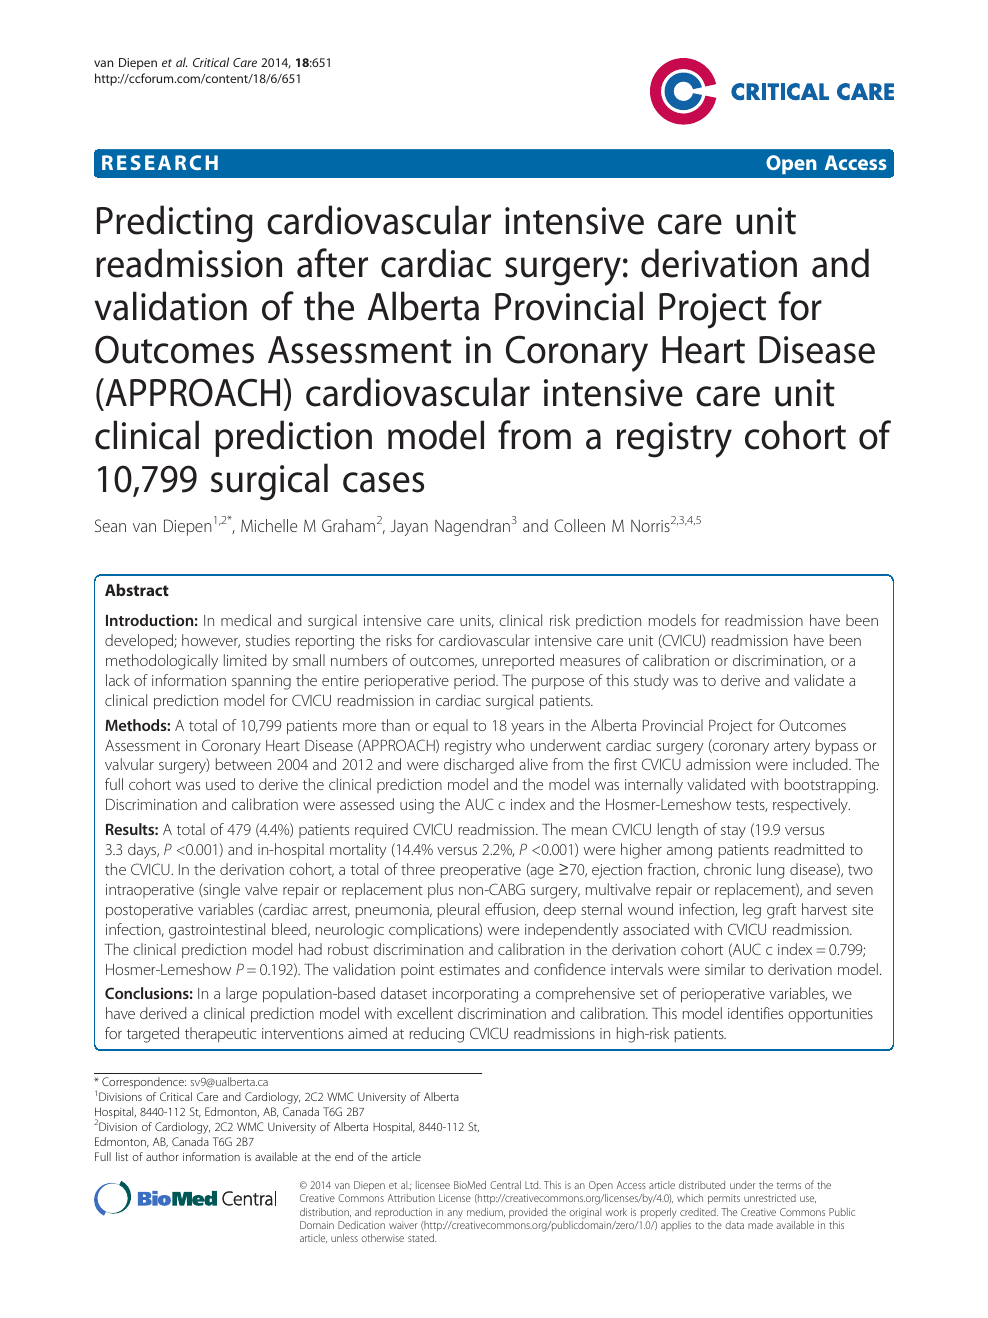 Predicting Cardiovascular Intensive Care Unit Readmission After Cardiac Surgery Derivation And Validation Of The Alberta Provincial Project For Outcomes Assessment In Coronary Heart Disease Approach Cardiovascular Intensive Care Unit Clinical